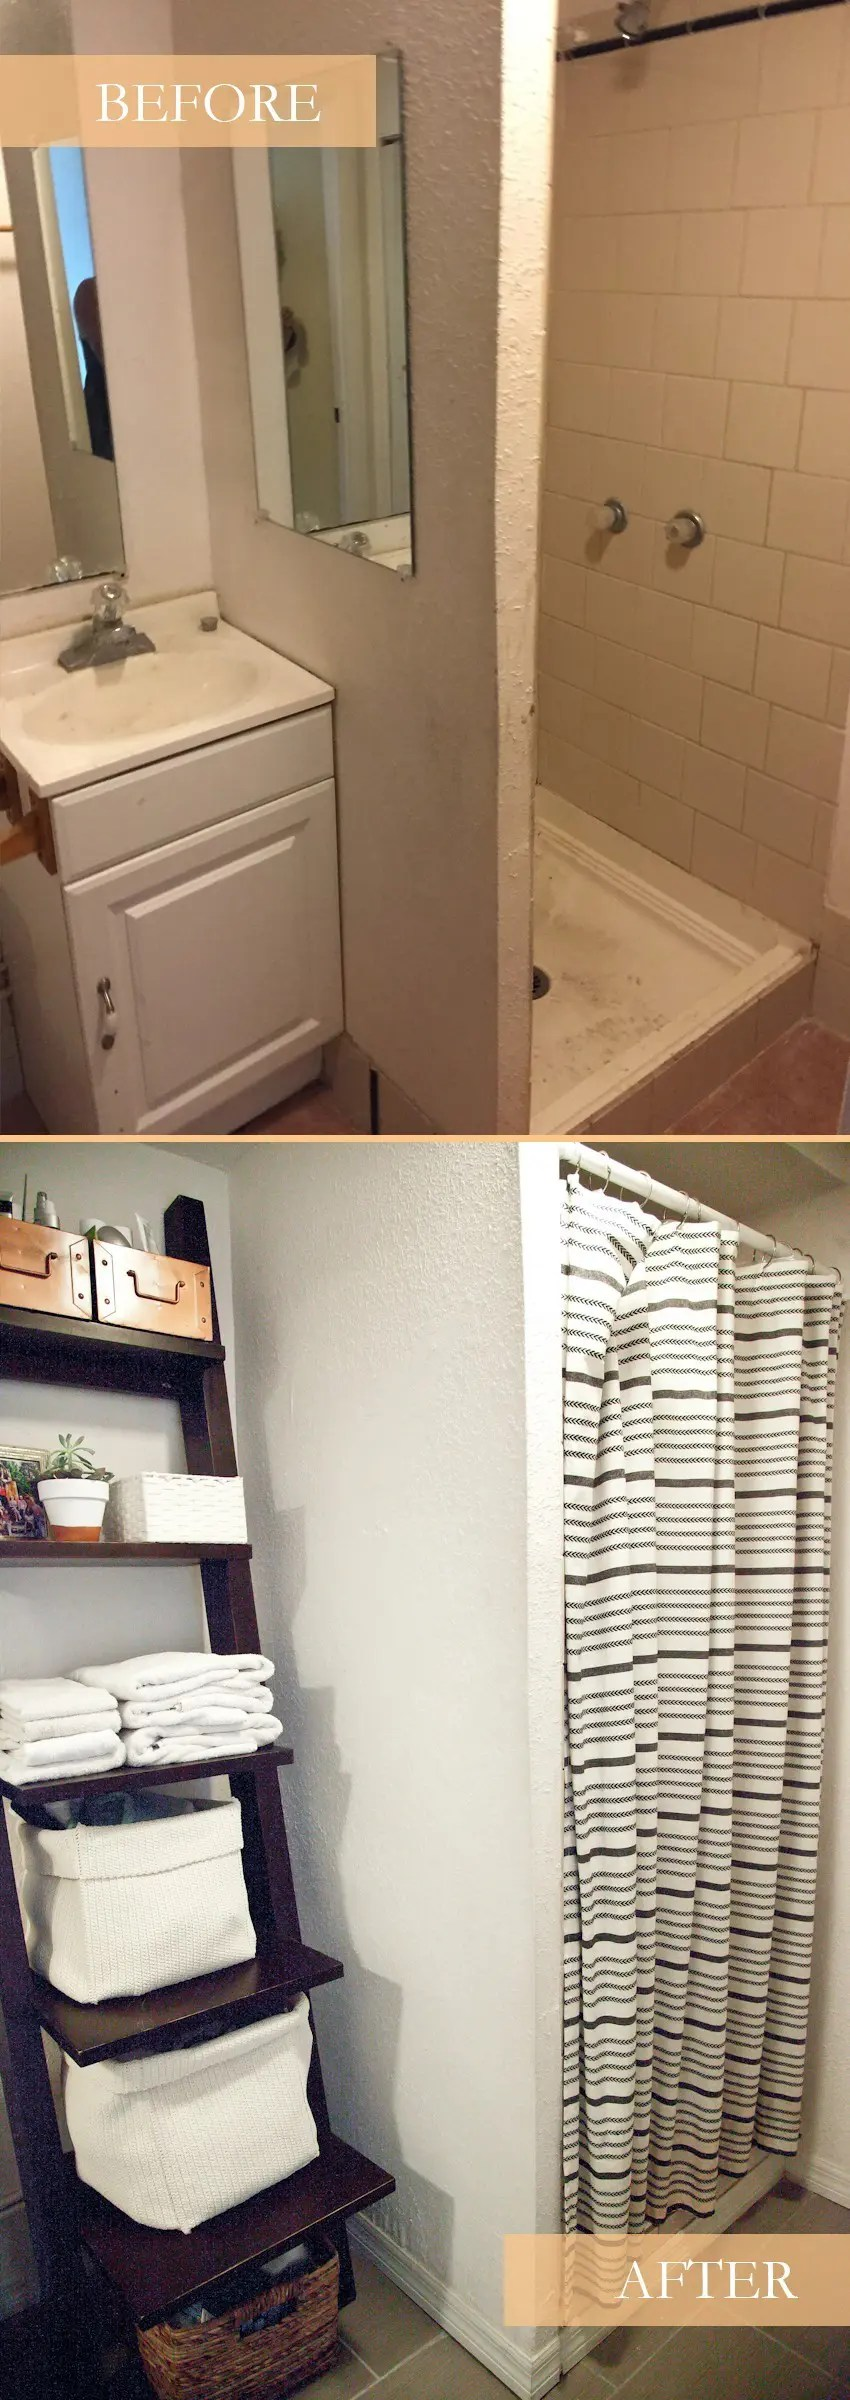 https://i1.wp.com/freshmommyblog.com/wp-content/uploads/2017/03/Fresh-Mommy-Blog-Studio-Bathroom-Remodel-Before-and-After-4.jpg?resize=850%2C2400